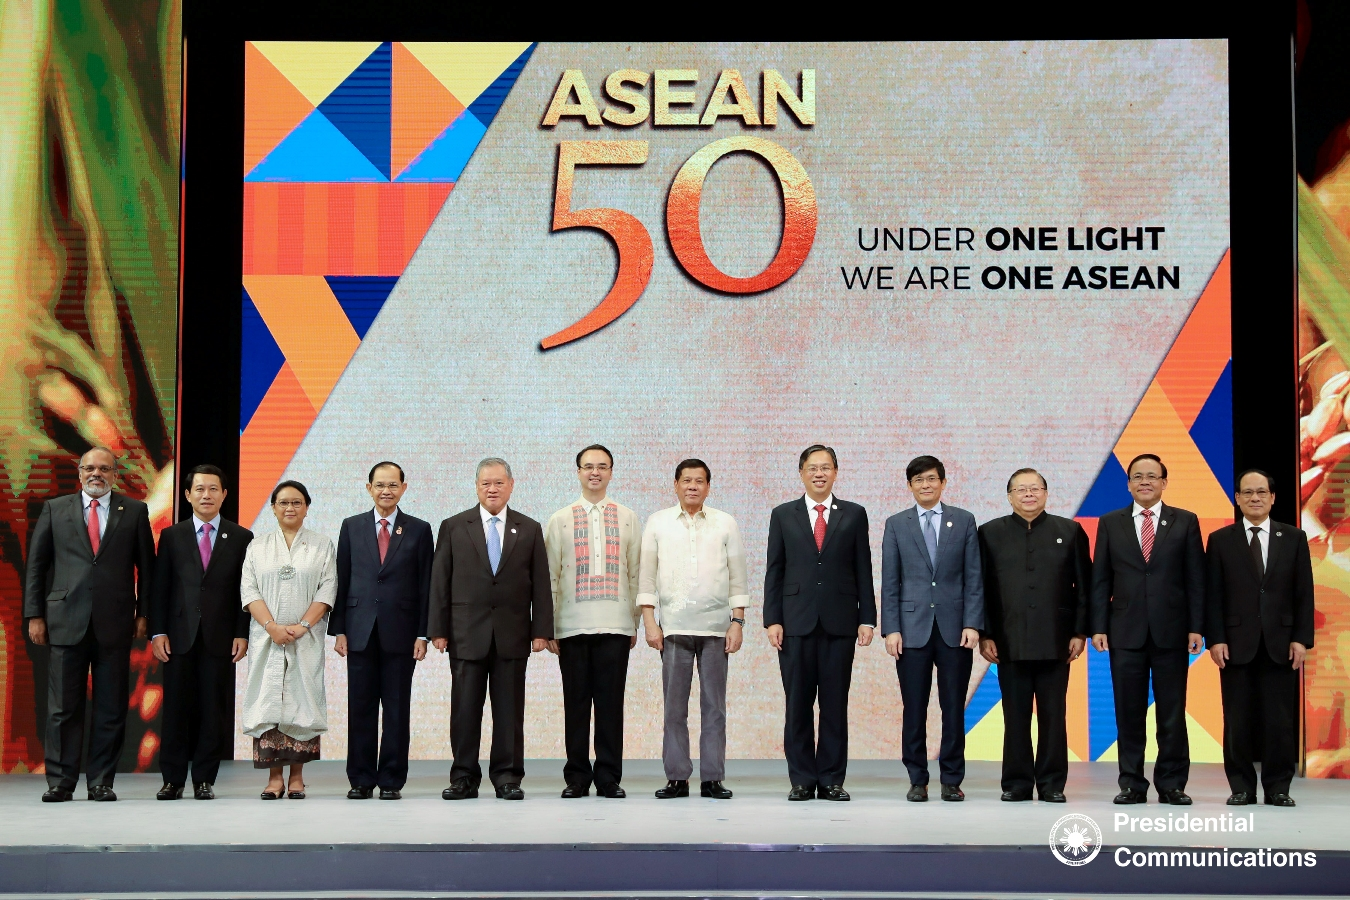 https://upload.wikimedia.org/wikipedia/commons/2/2d/ASEAN_50th_Anniversary.jpg